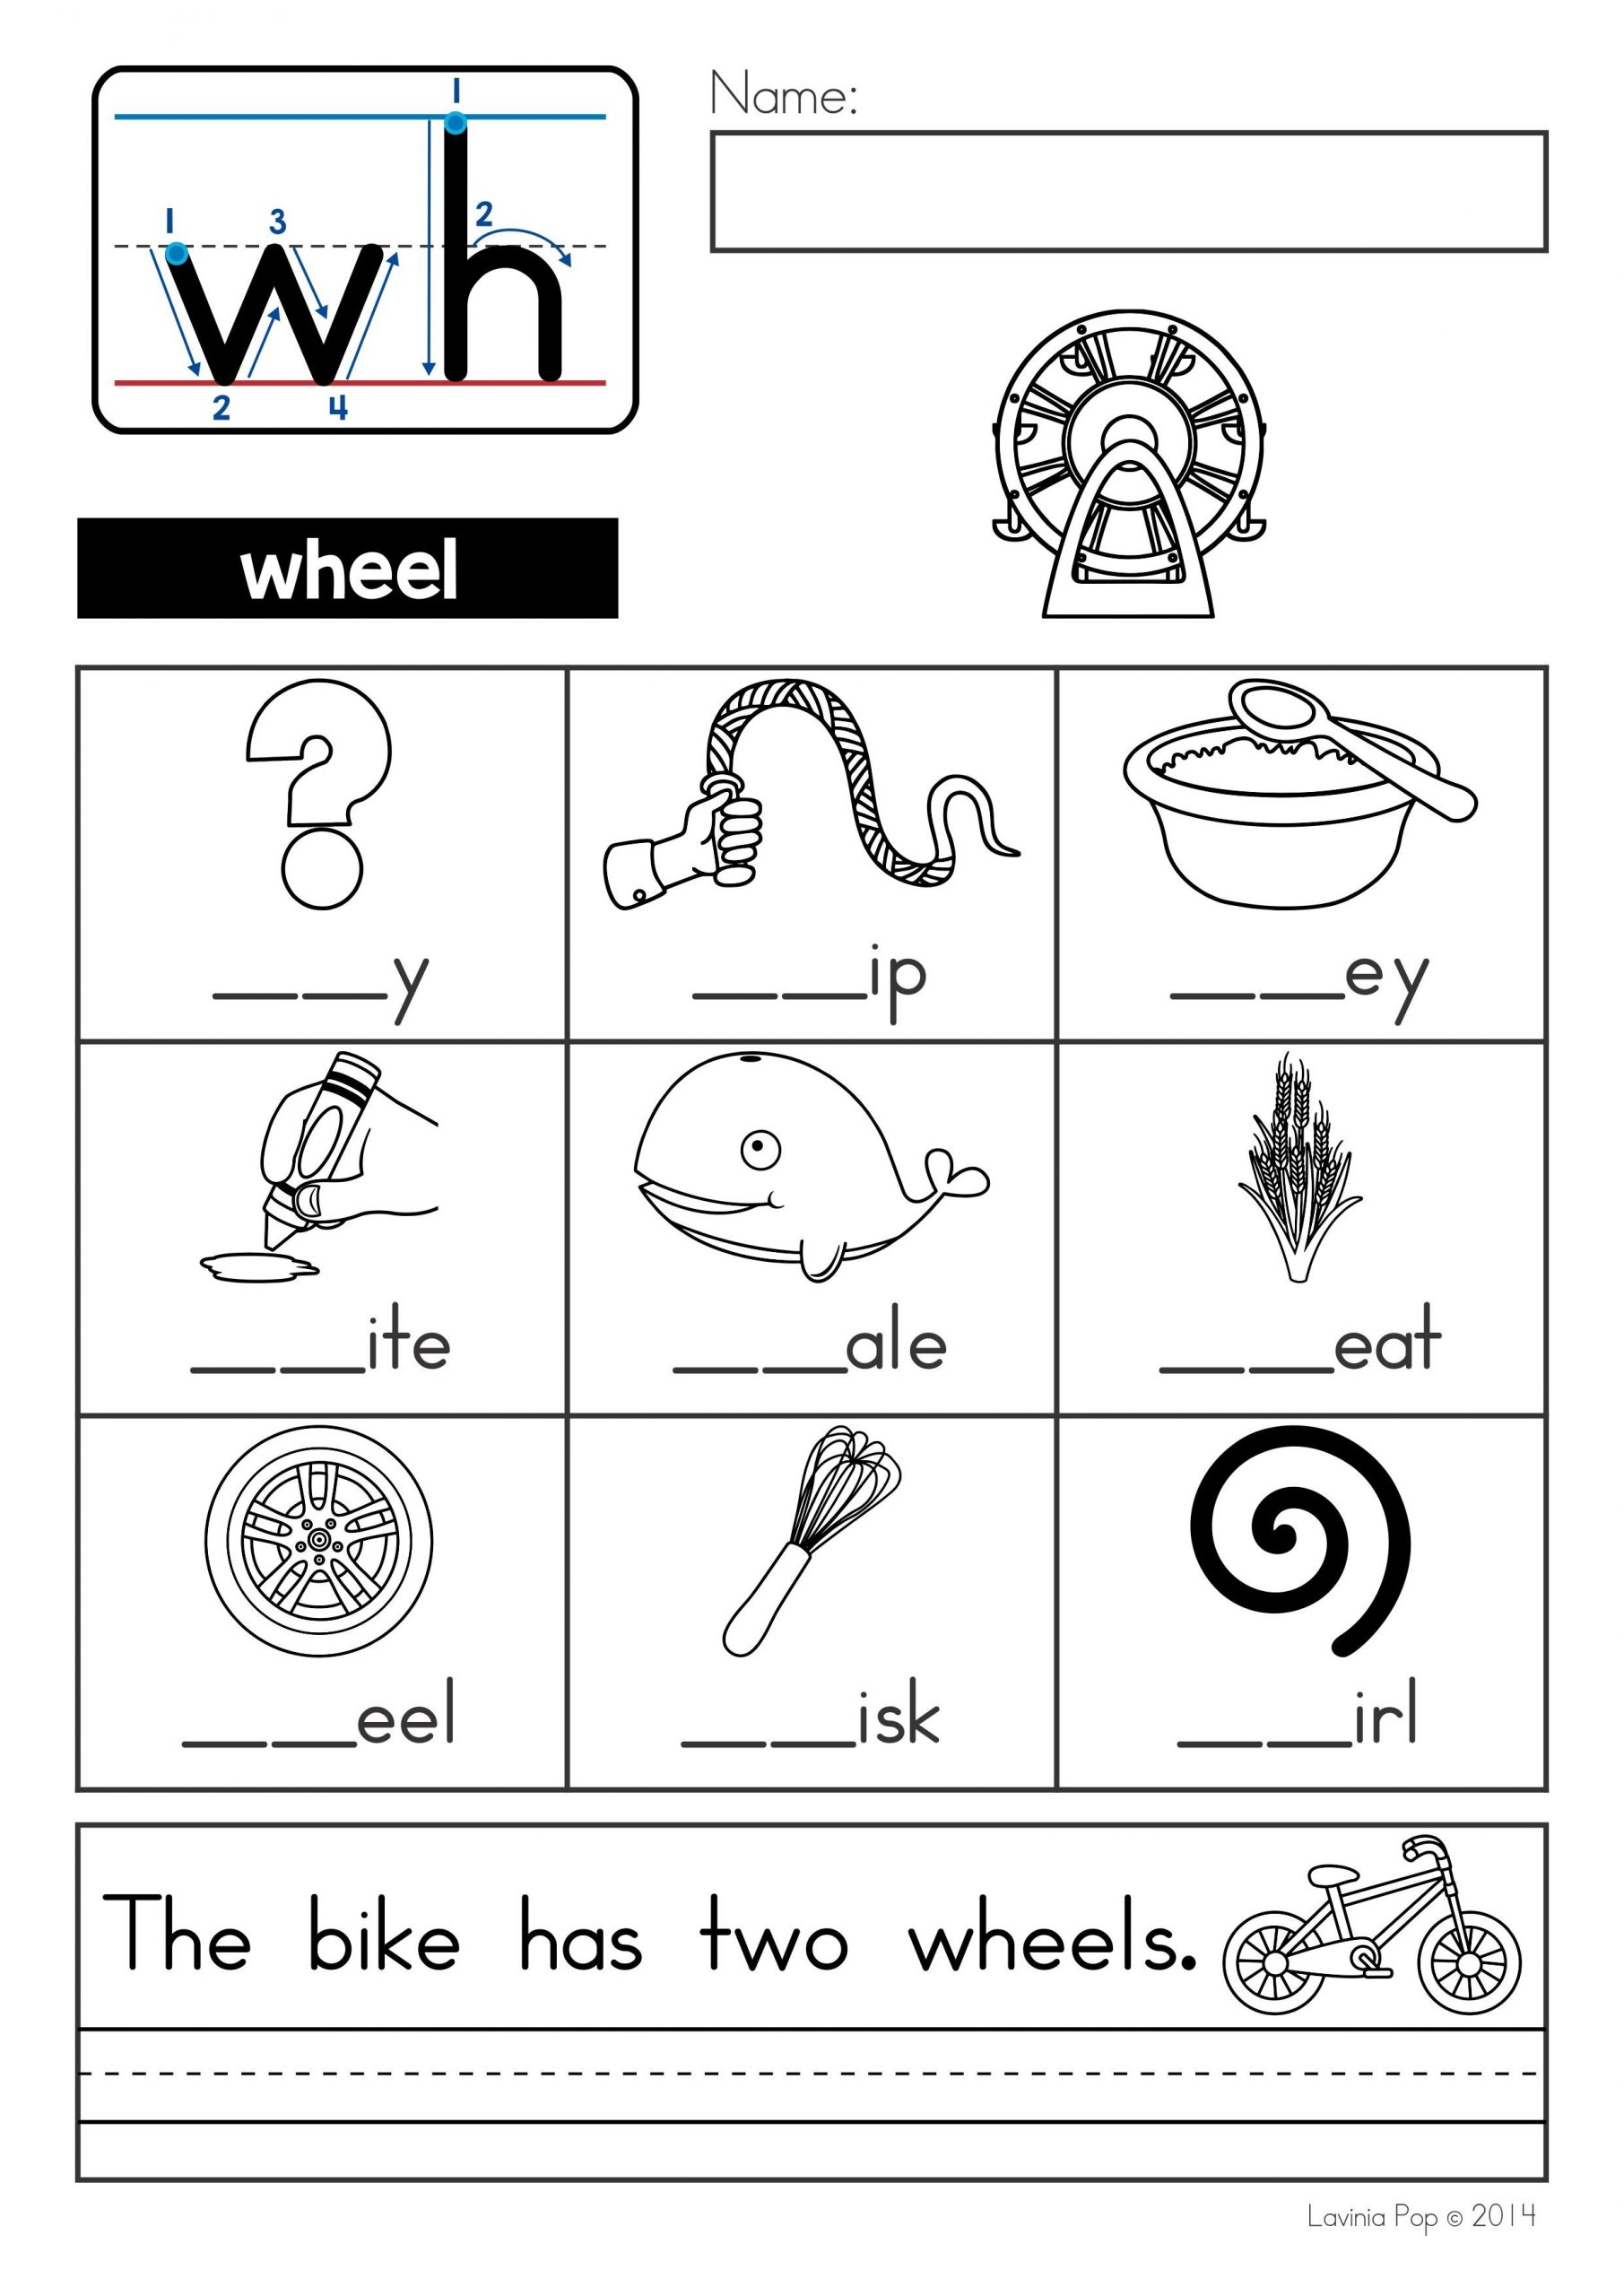 Ck Worksheets for 1st Grade Phonics Worksheets Grade 1